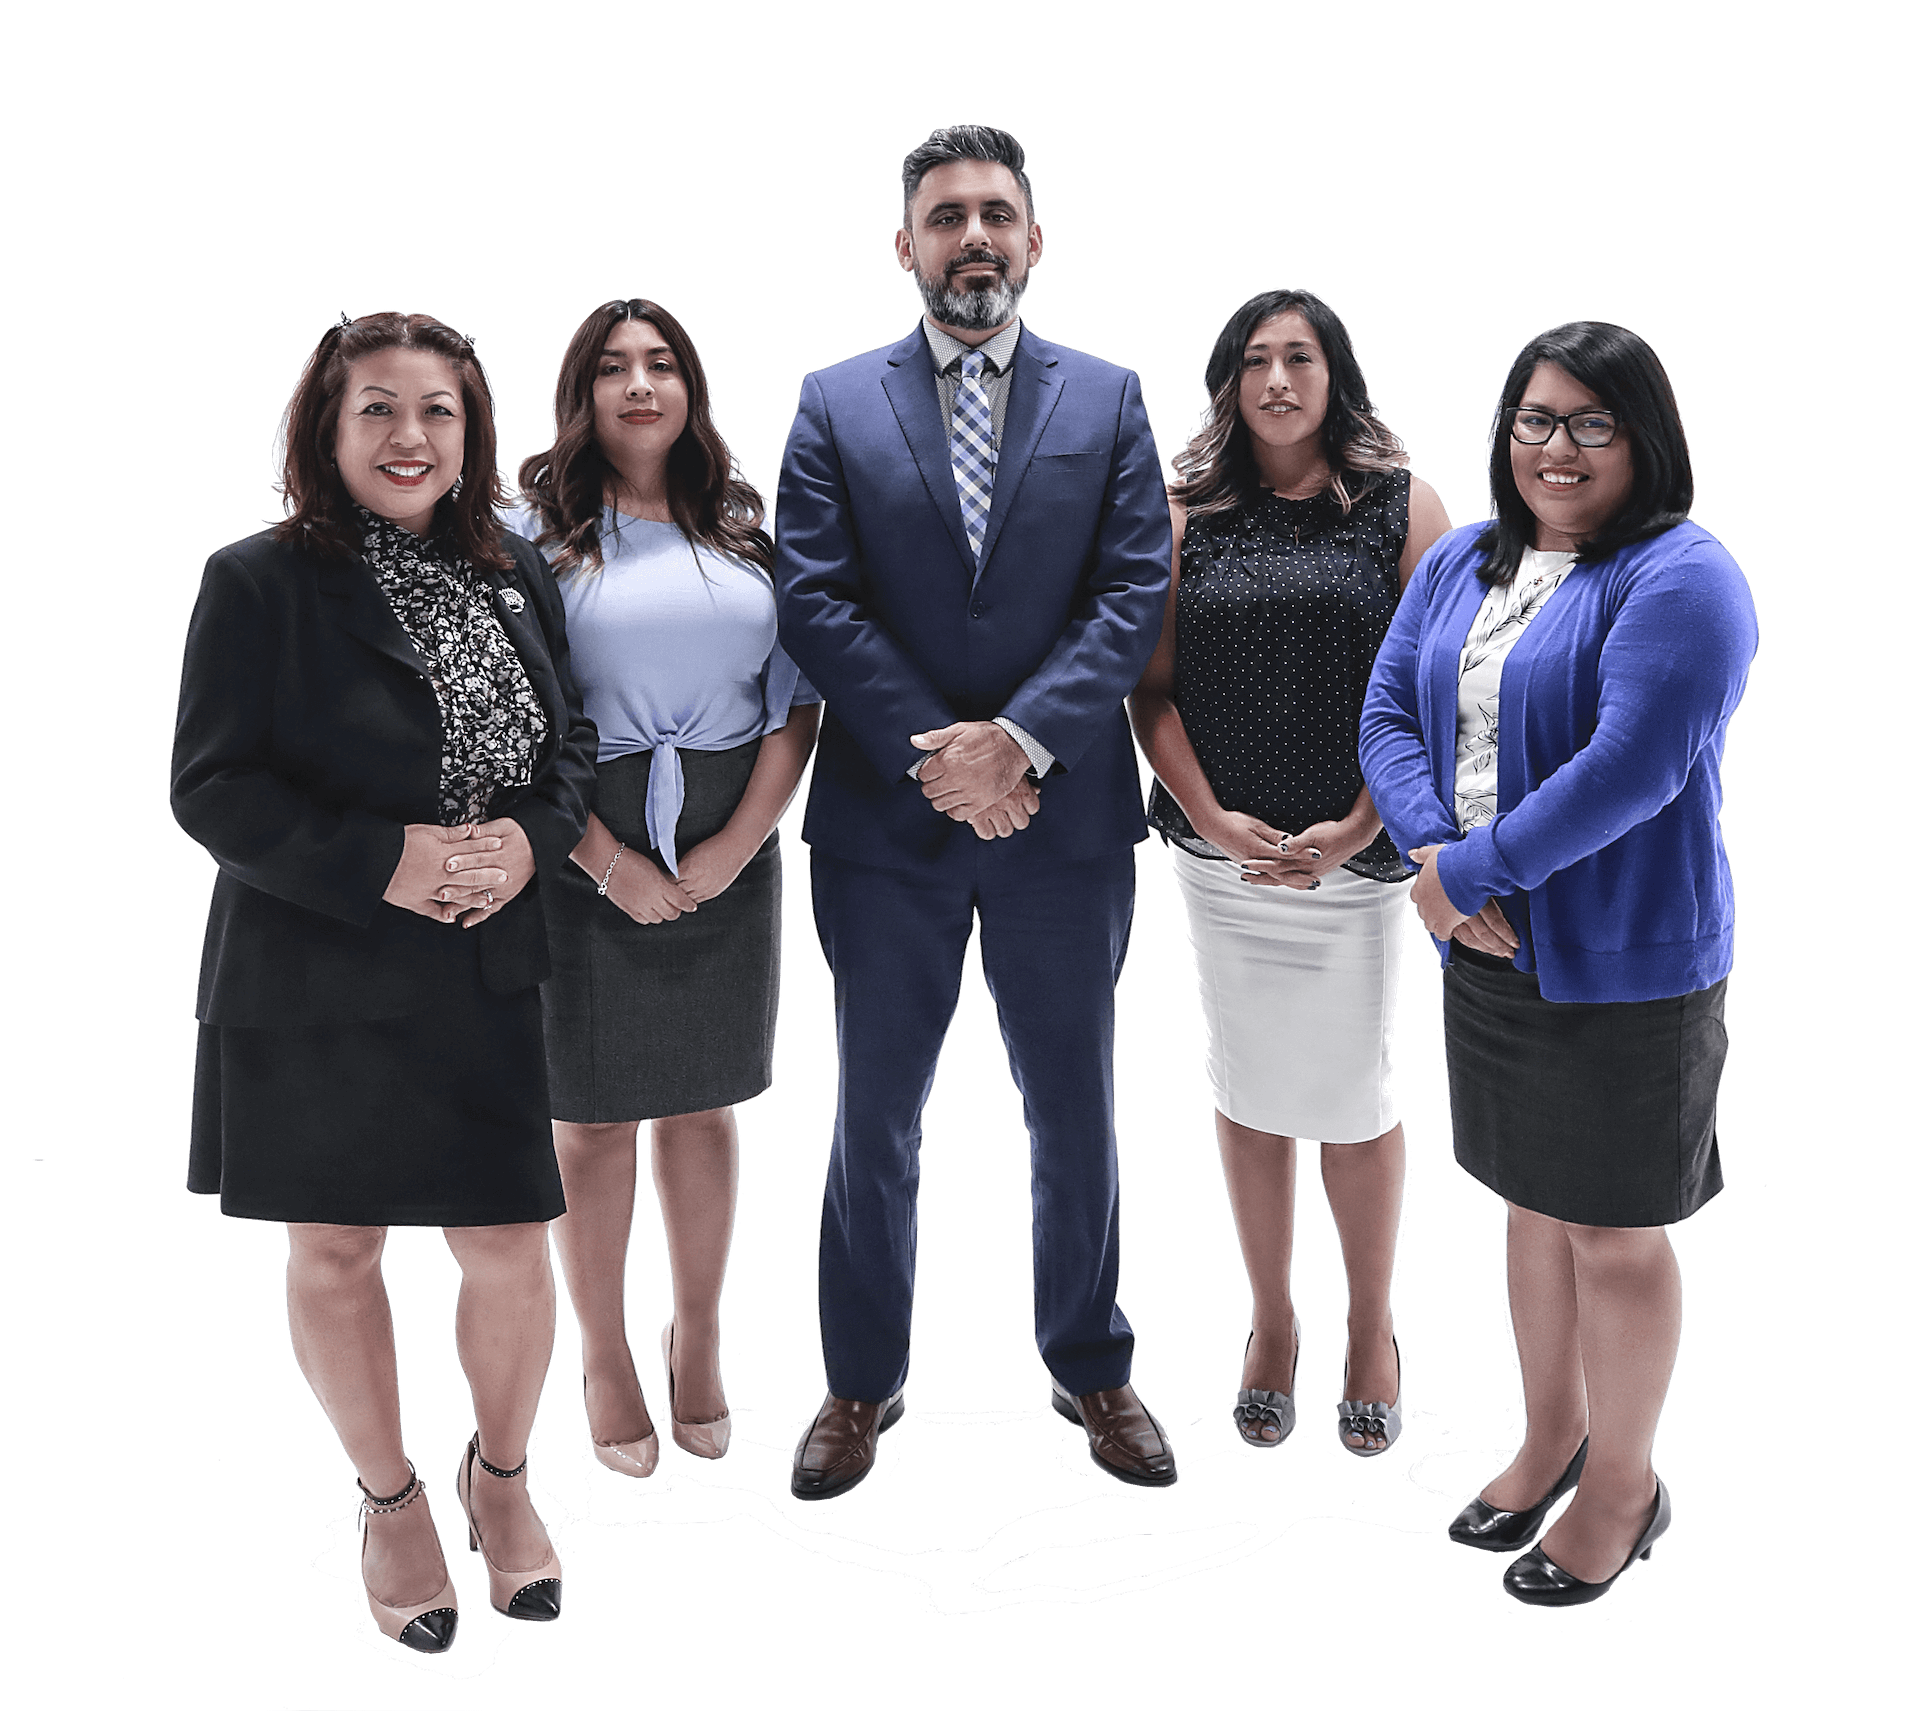 Figeroa Law Firm Team Image